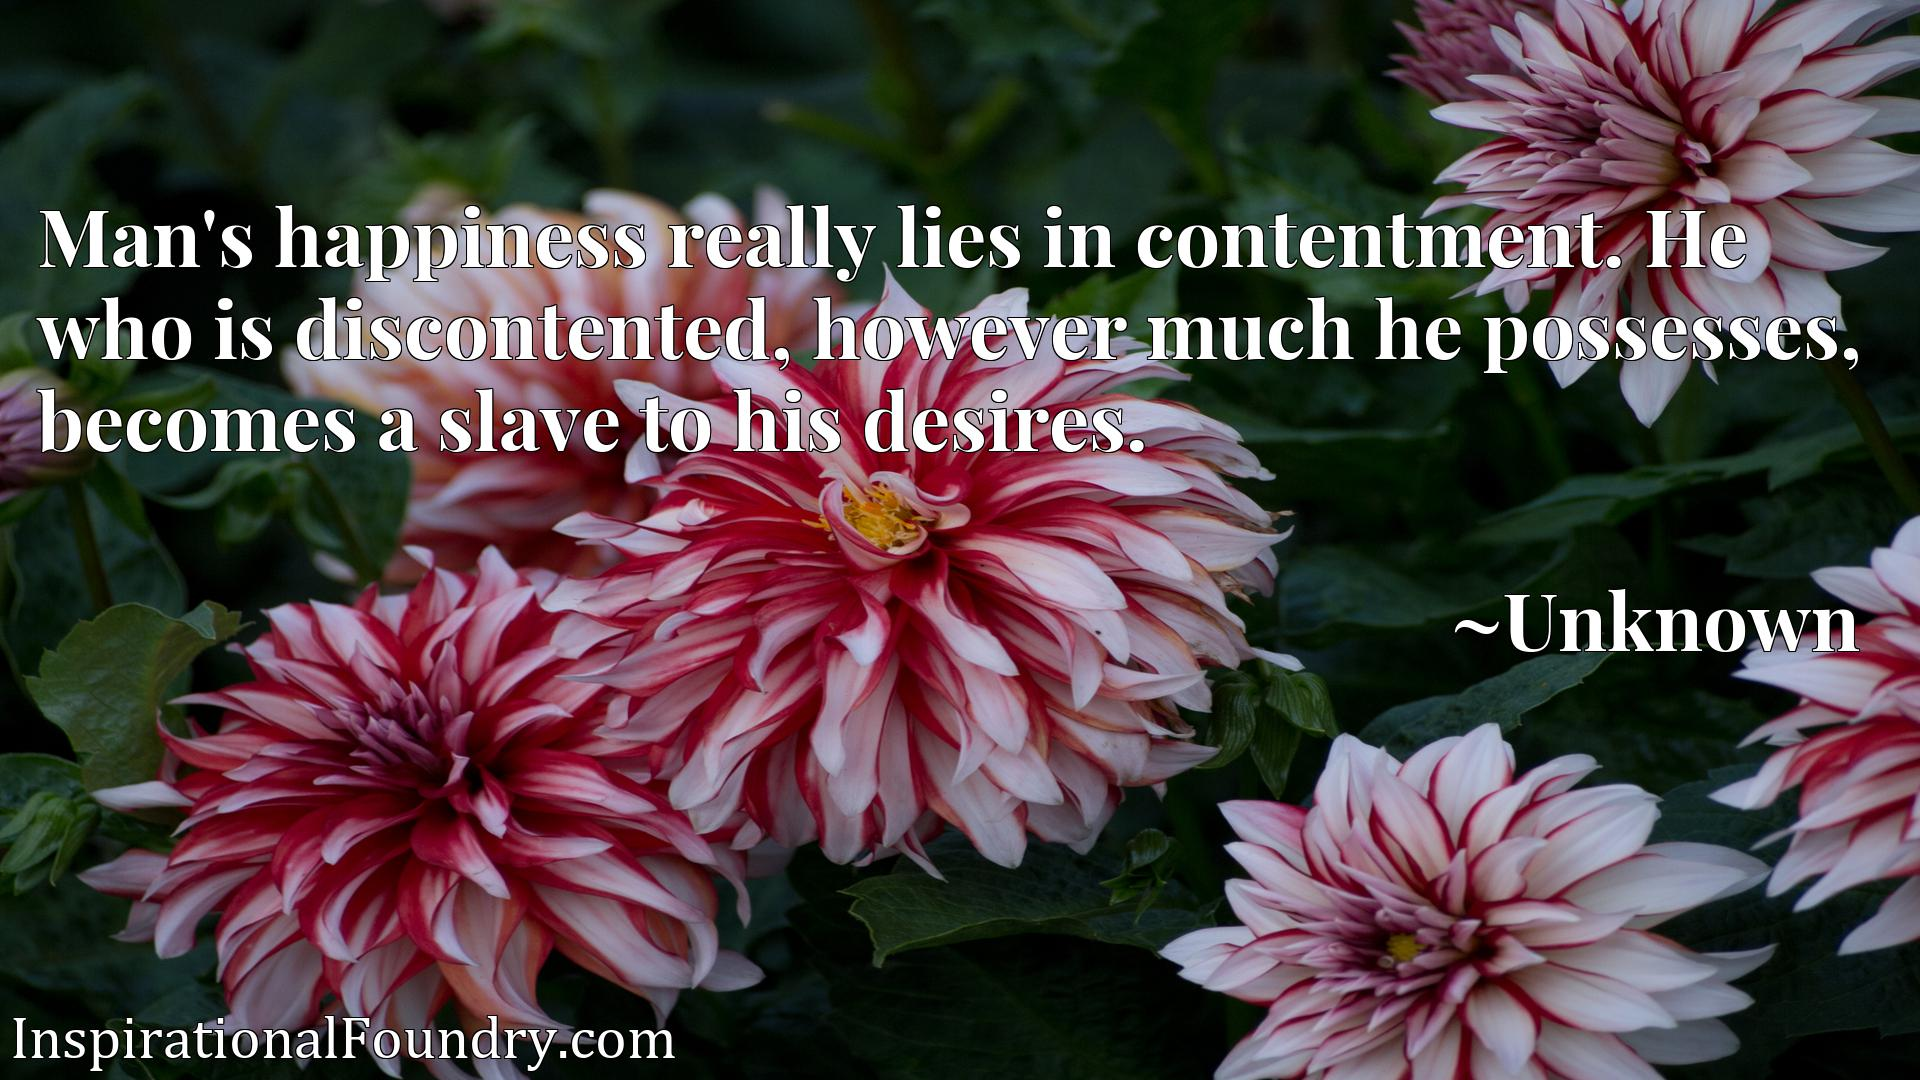 Man's happiness really lies in contentment. He who is discontented, however much he possesses, becomes a slave to his desires.